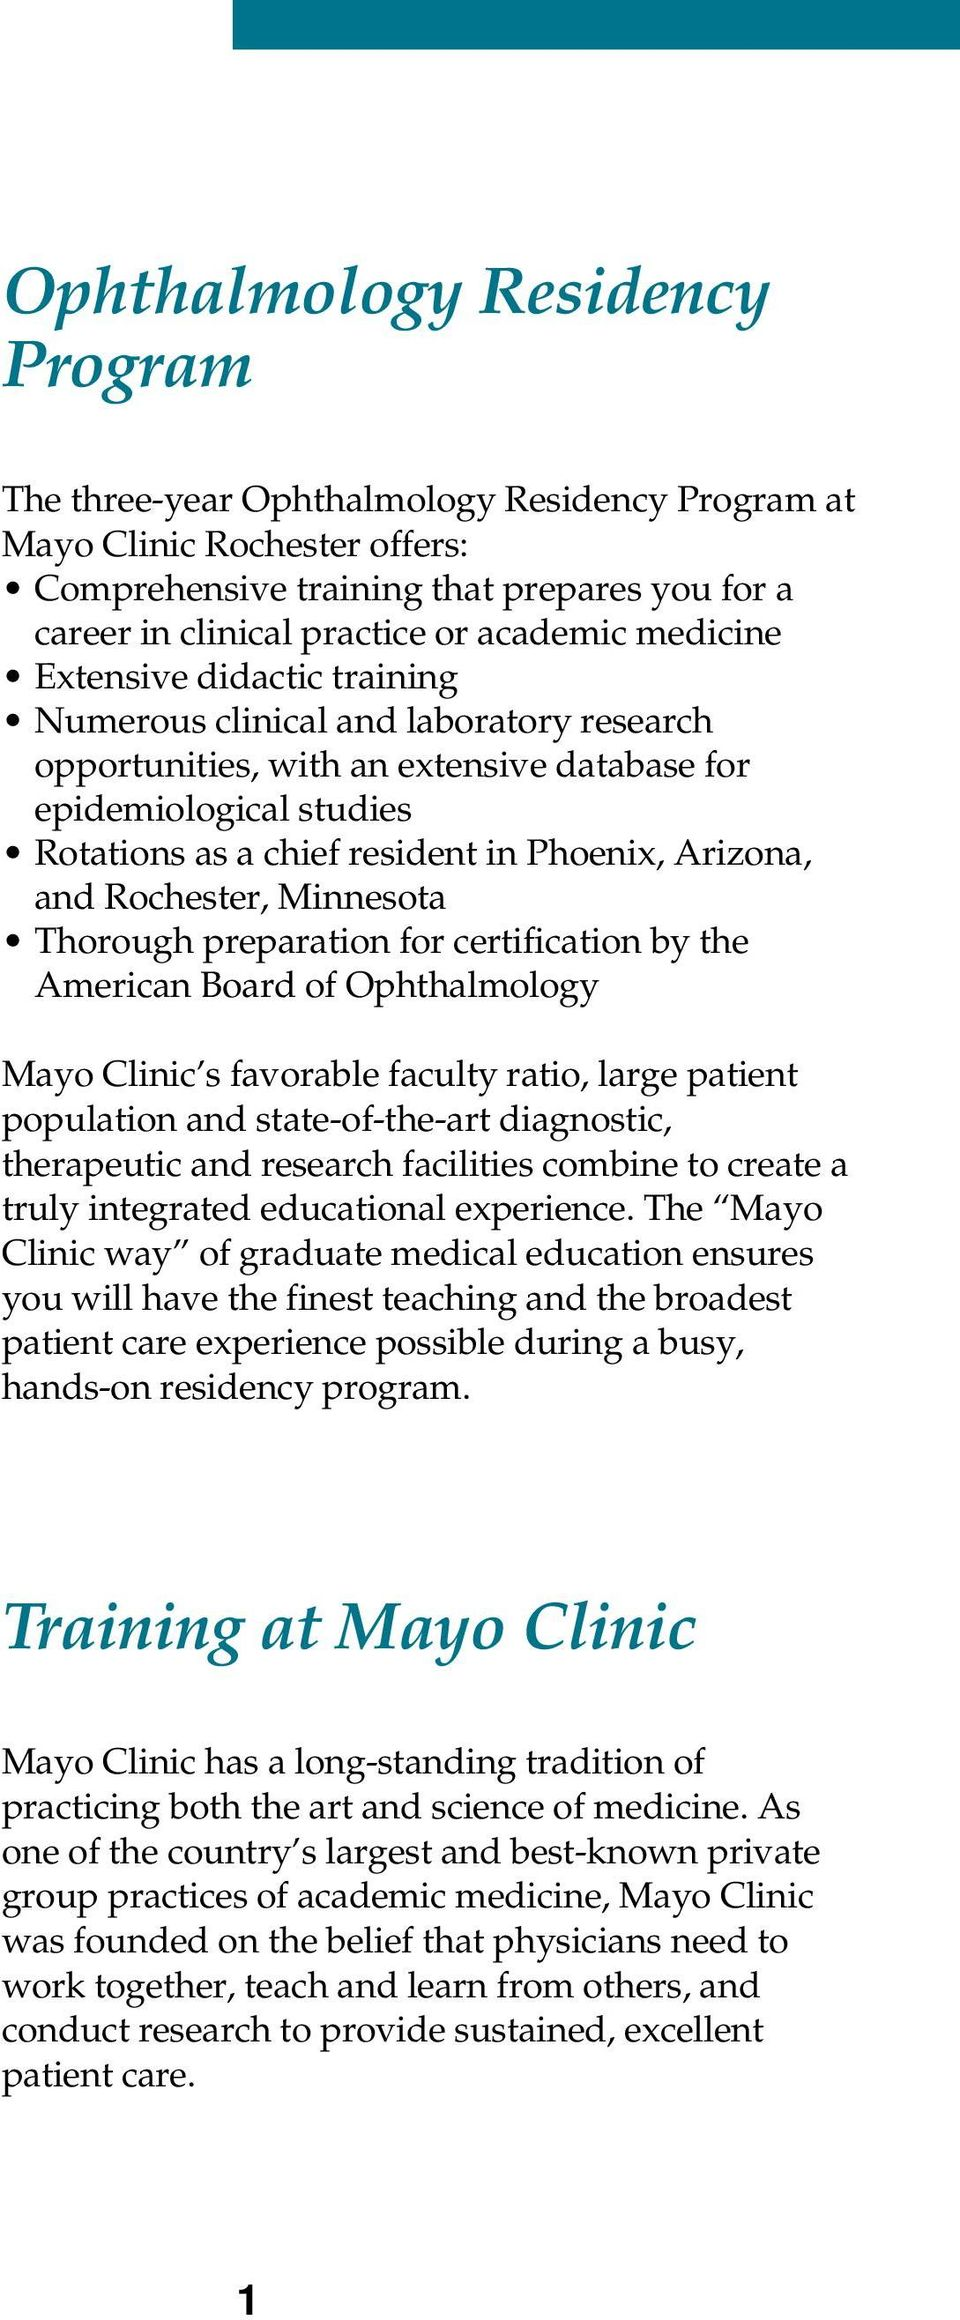 Ophthalmology Residency Program - PDF